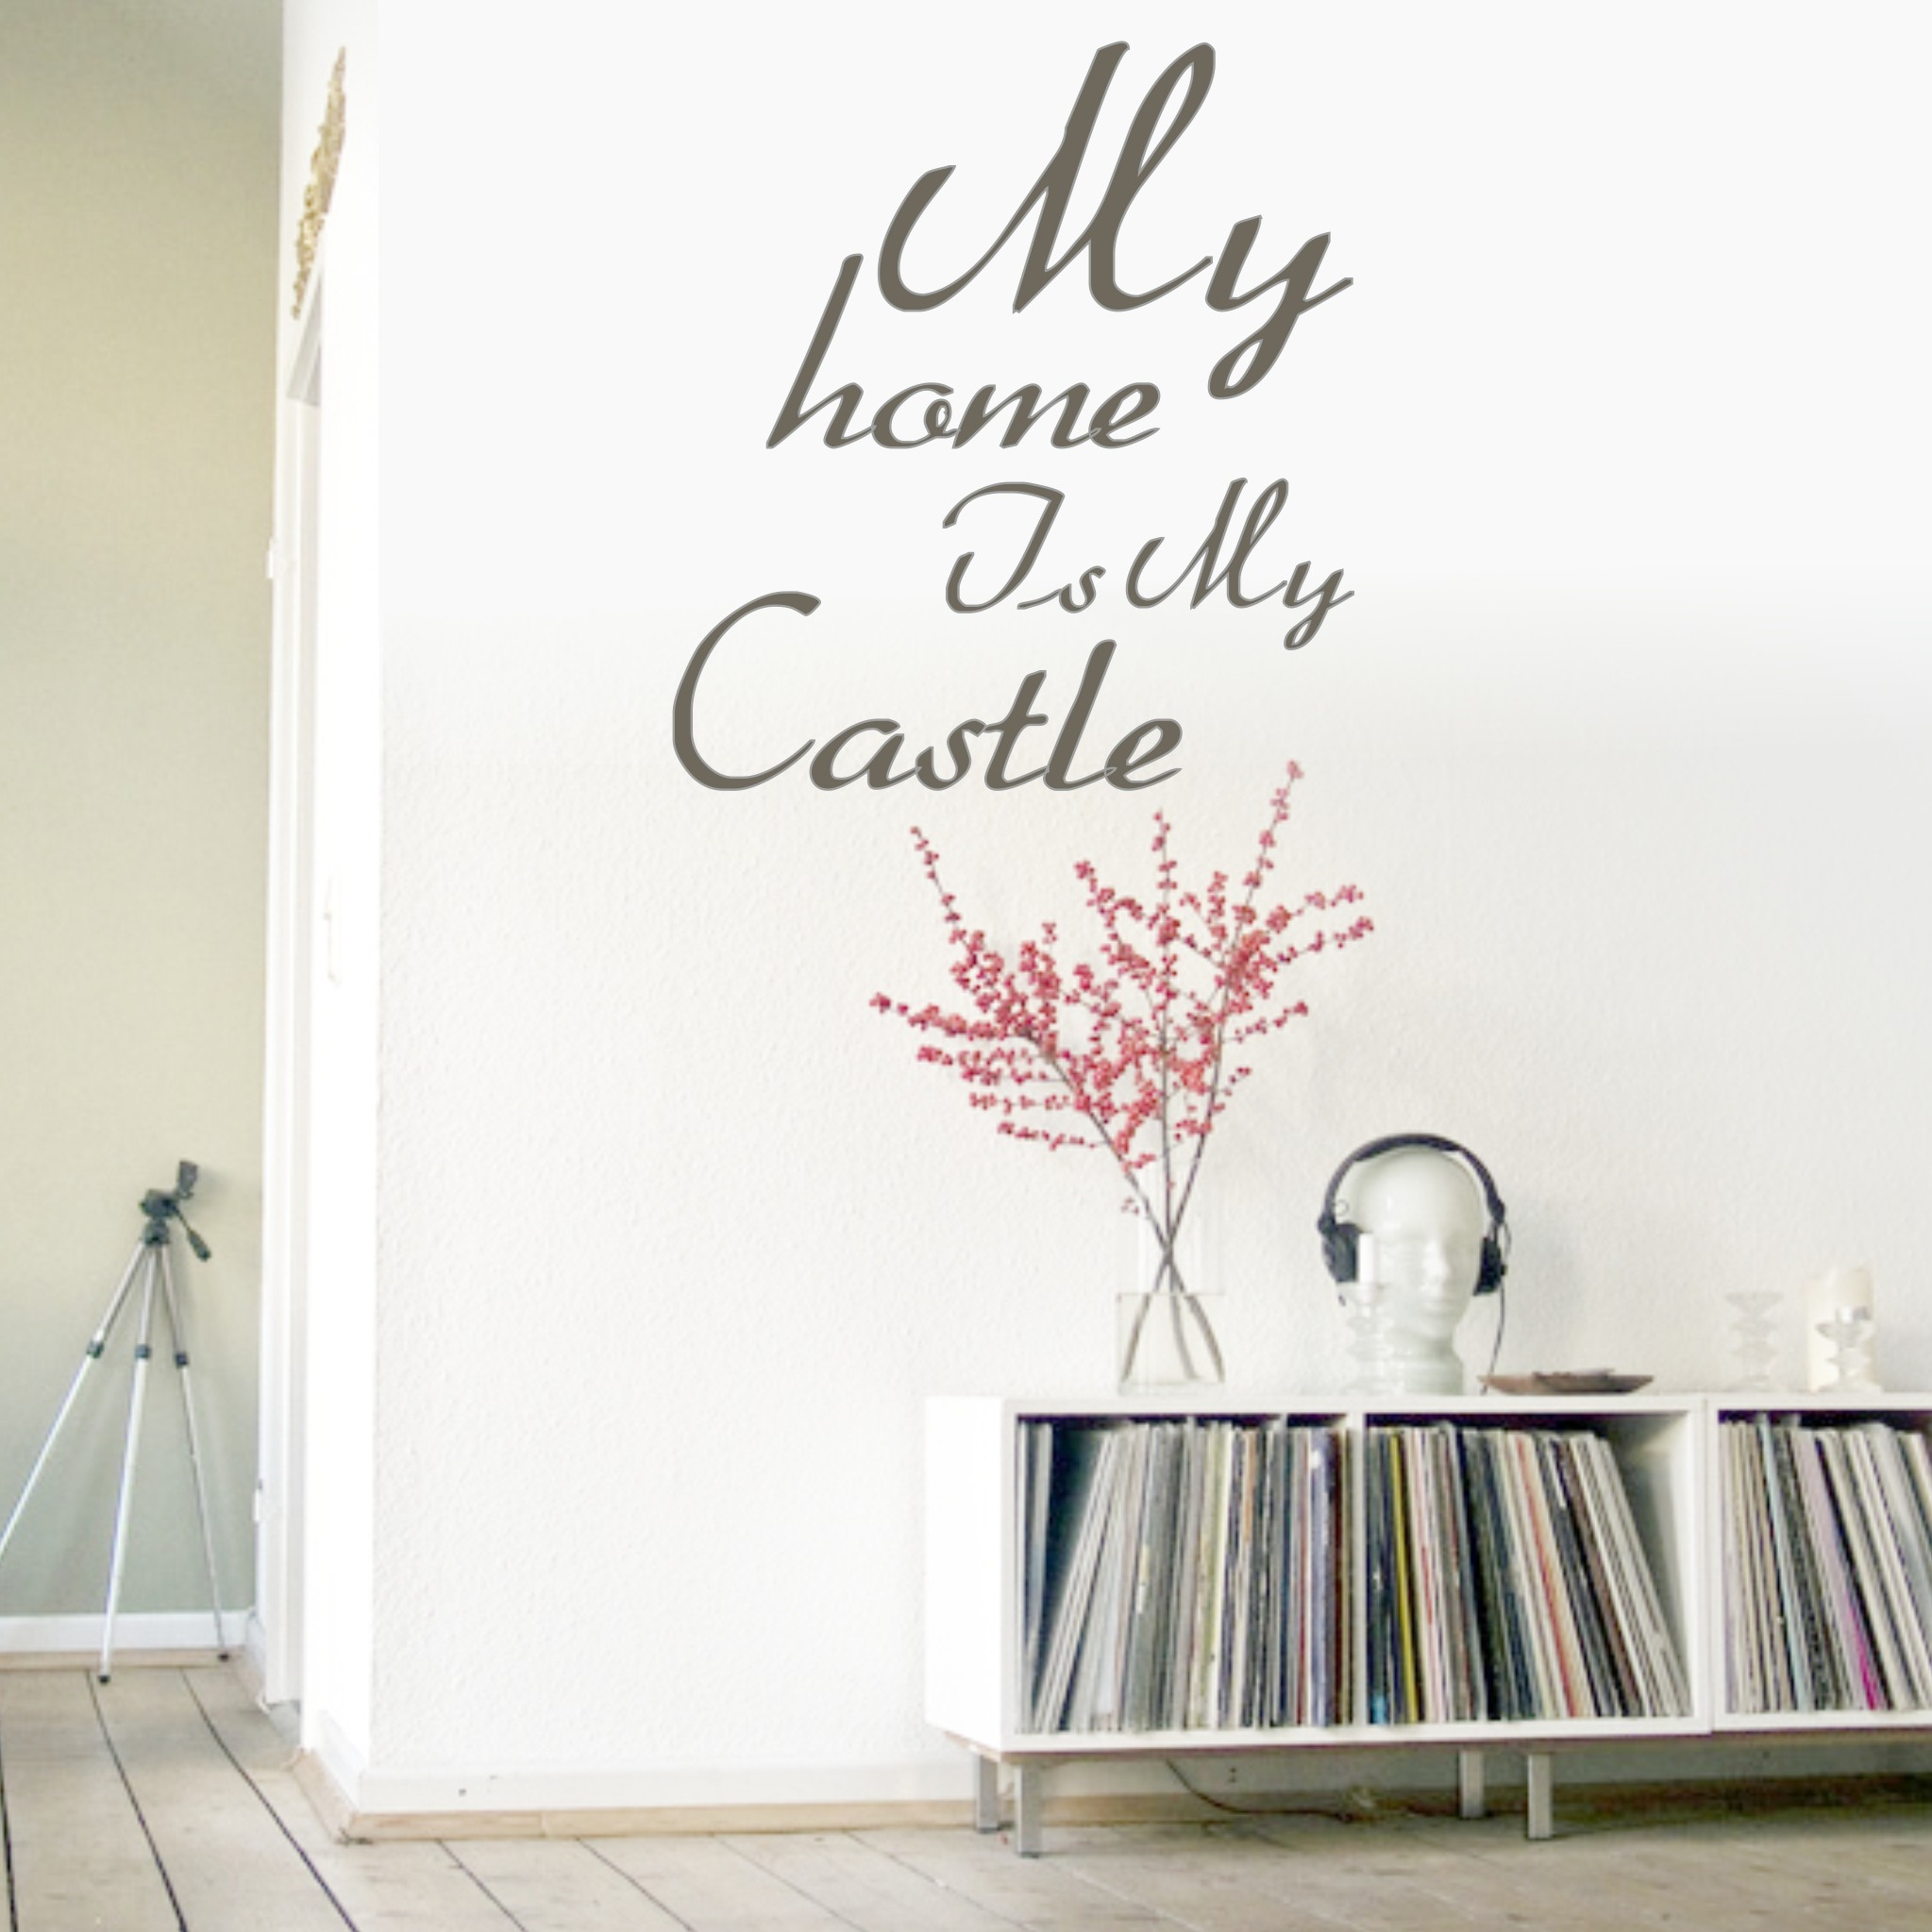 wandtattoo my home is my castle spr che zitate wandtattoos livingstyle wanddesign. Black Bedroom Furniture Sets. Home Design Ideas